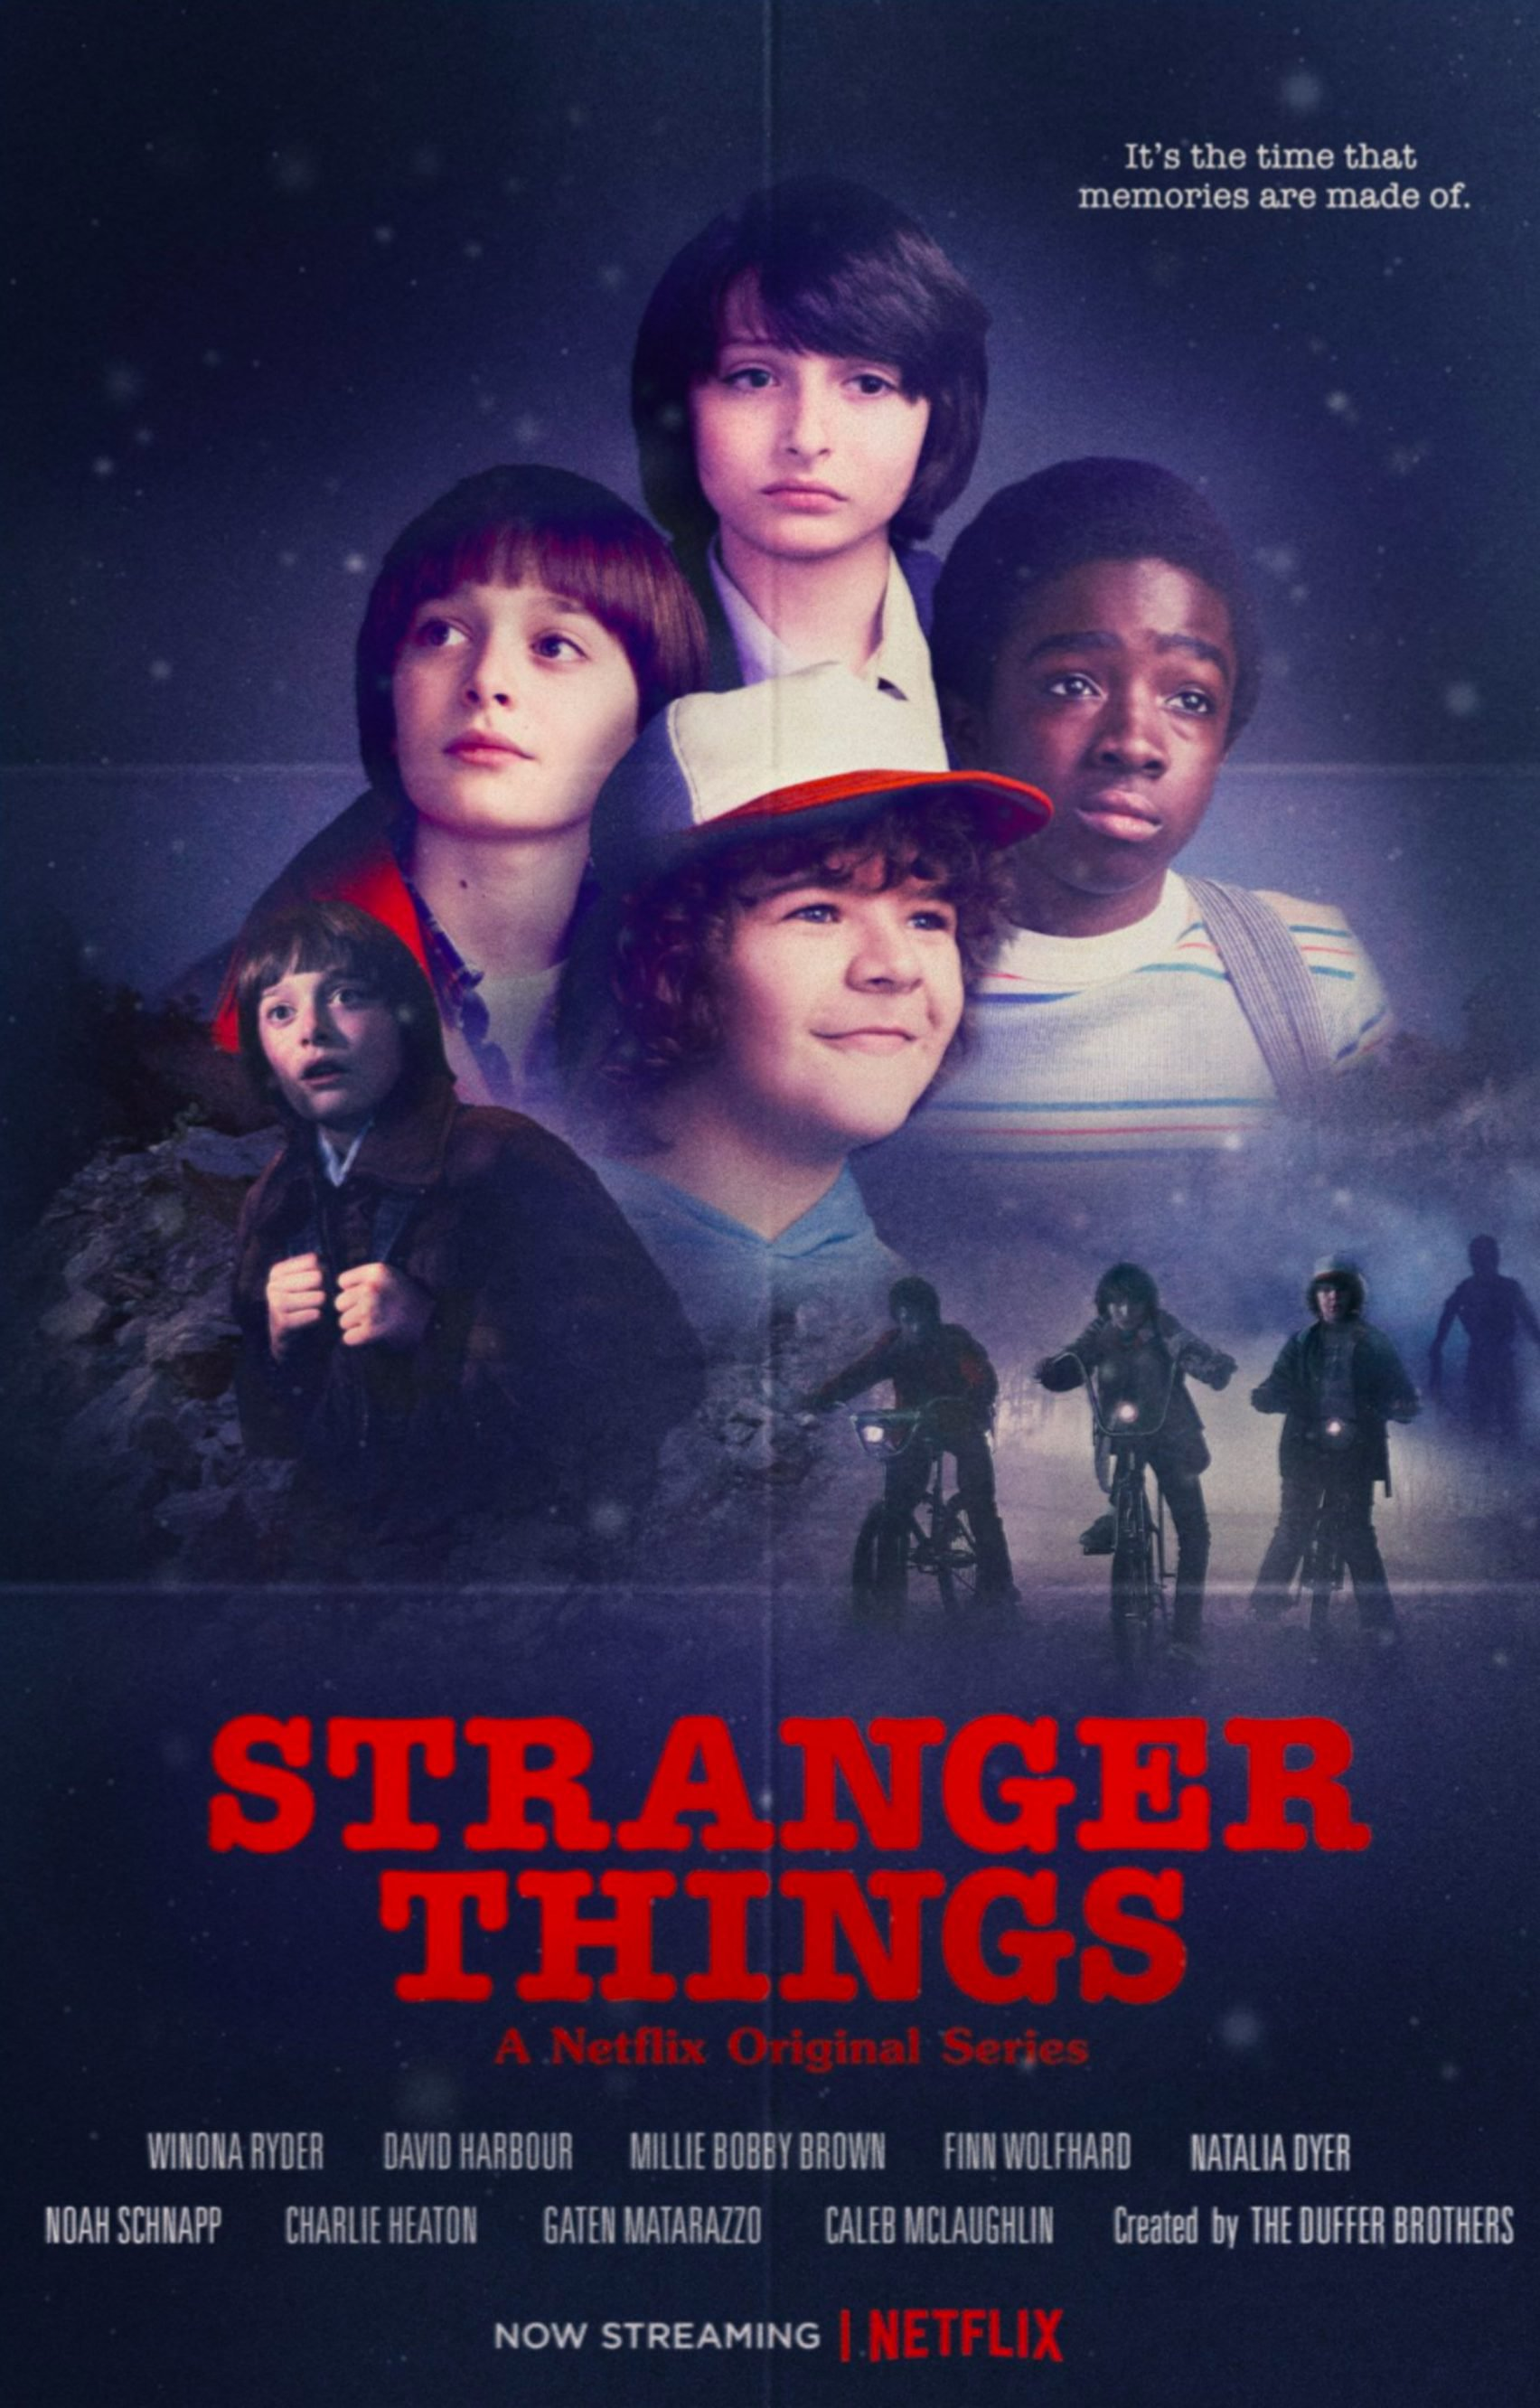 stranger-things-poster 4